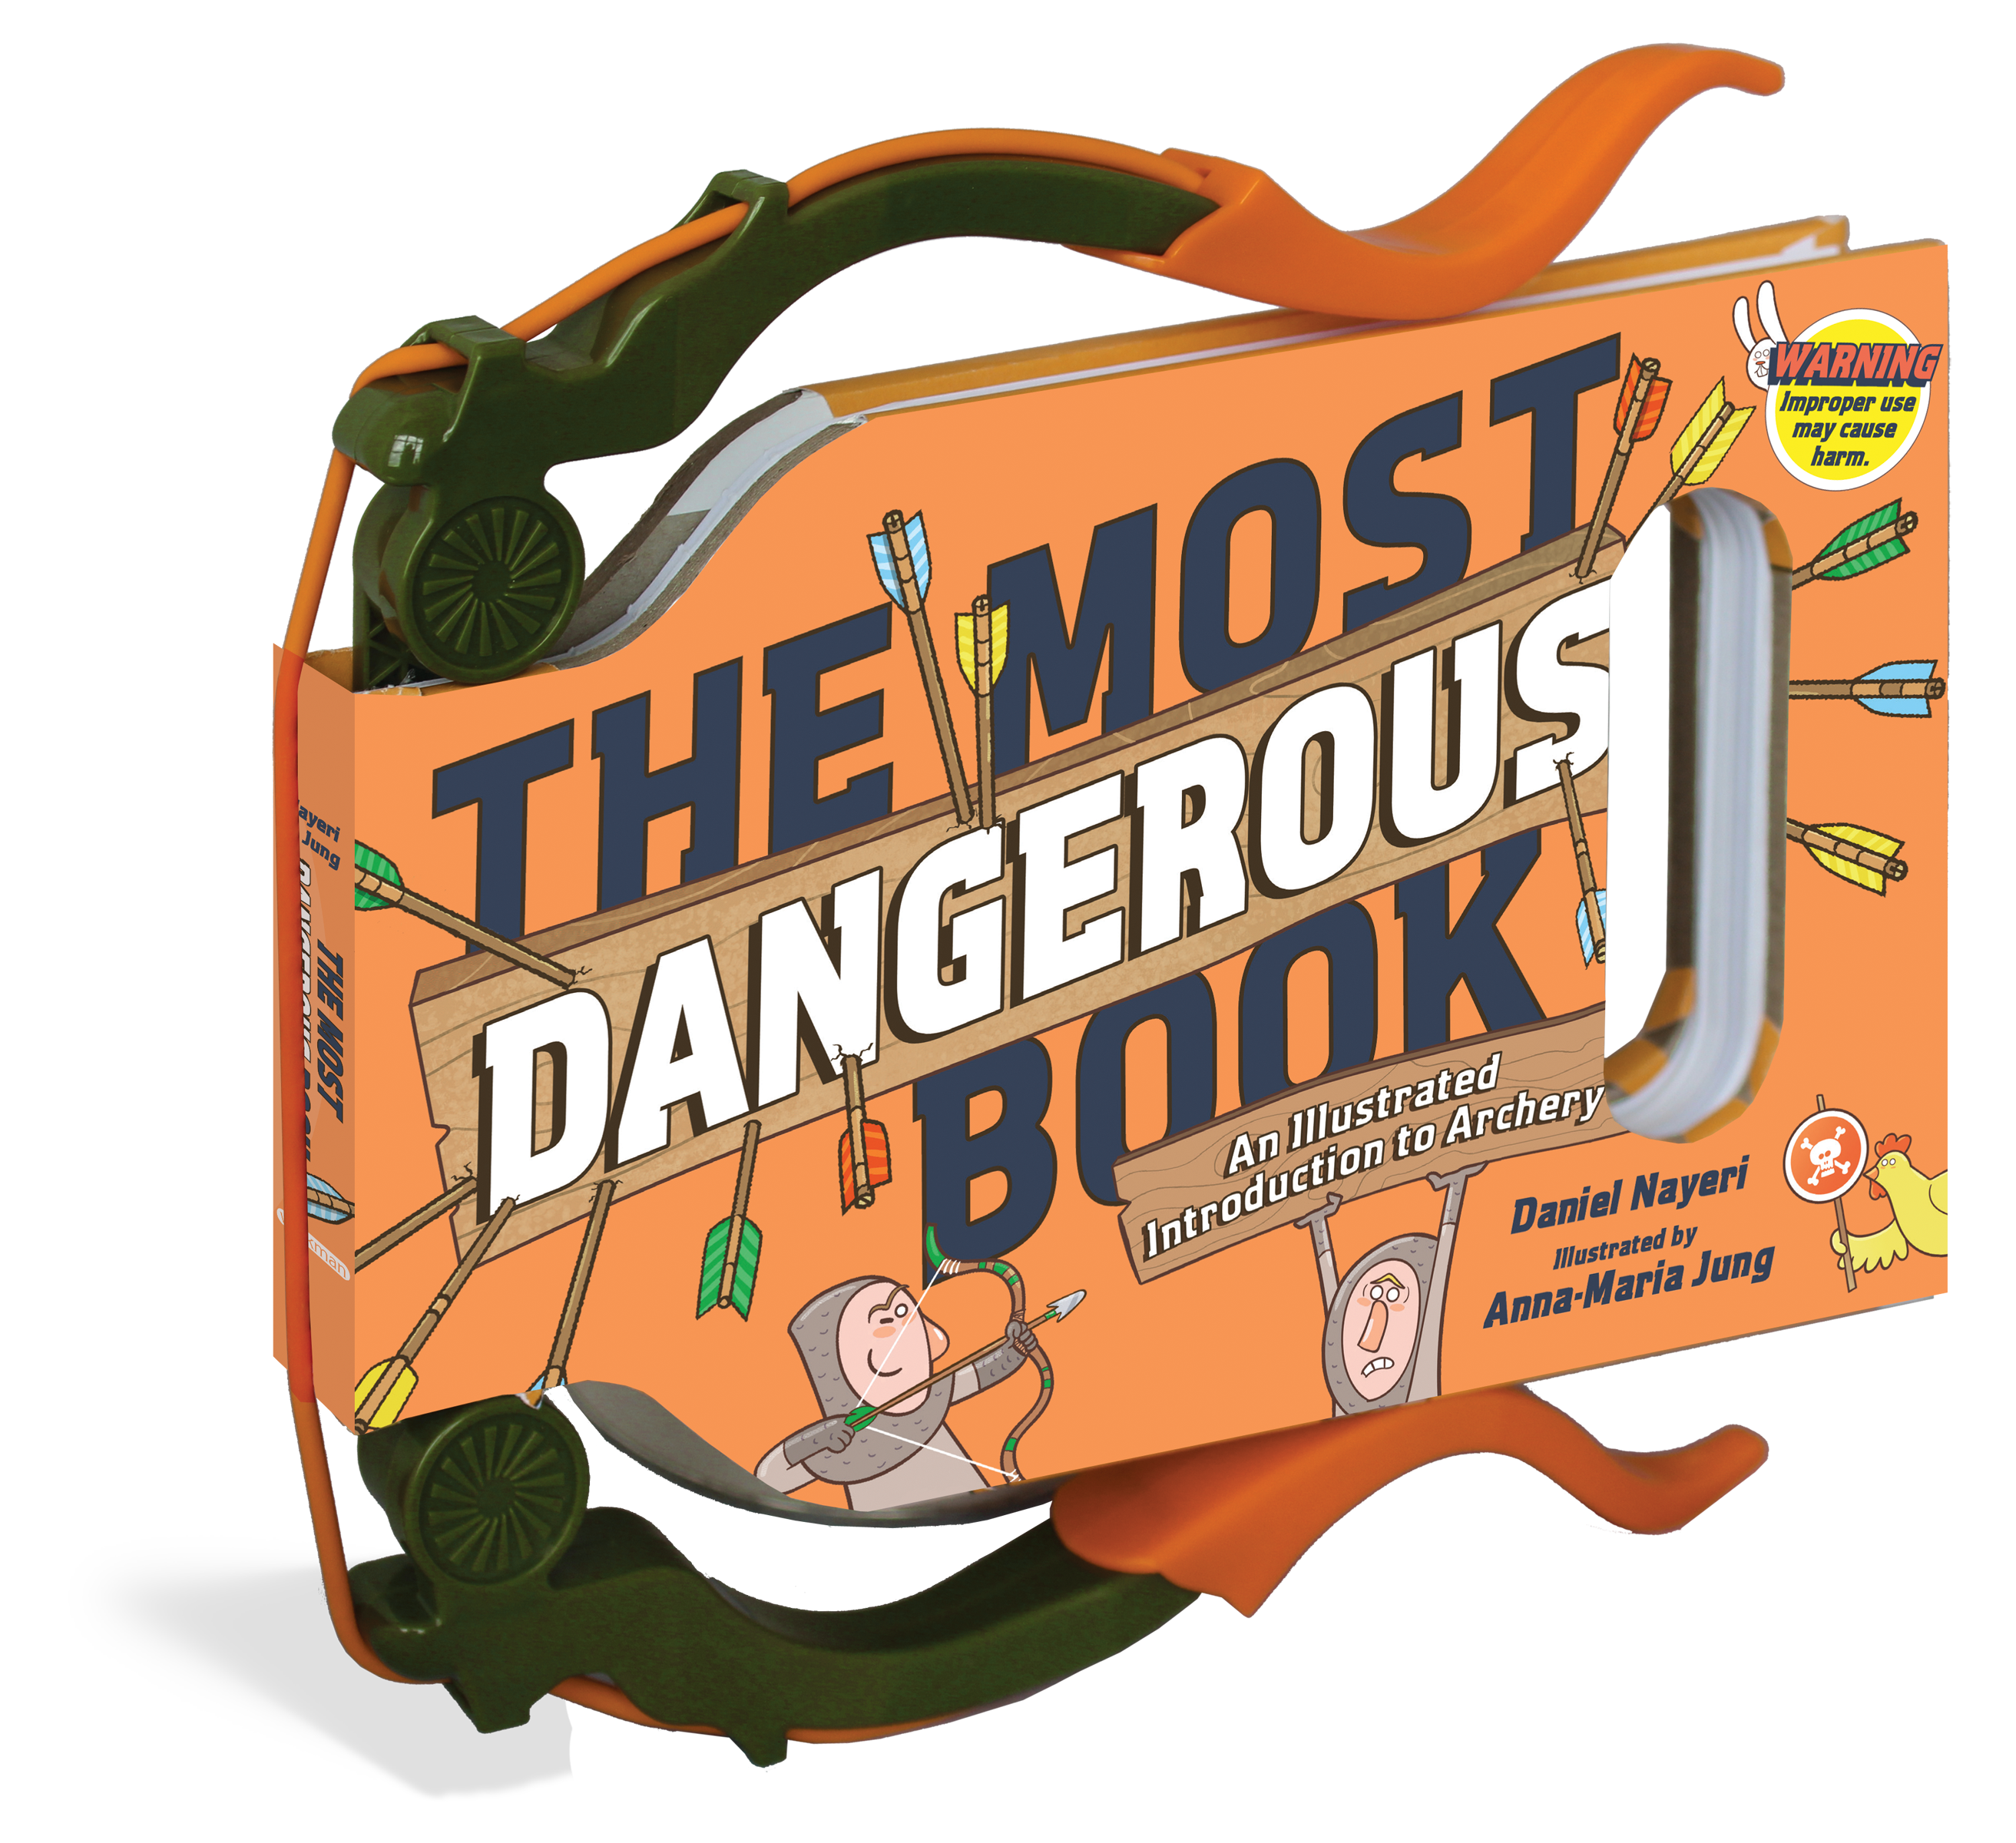 The book of daniel clipart image freeuse download The Most Dangerous Book: An Illustrated Introduction to Archery ... image freeuse download